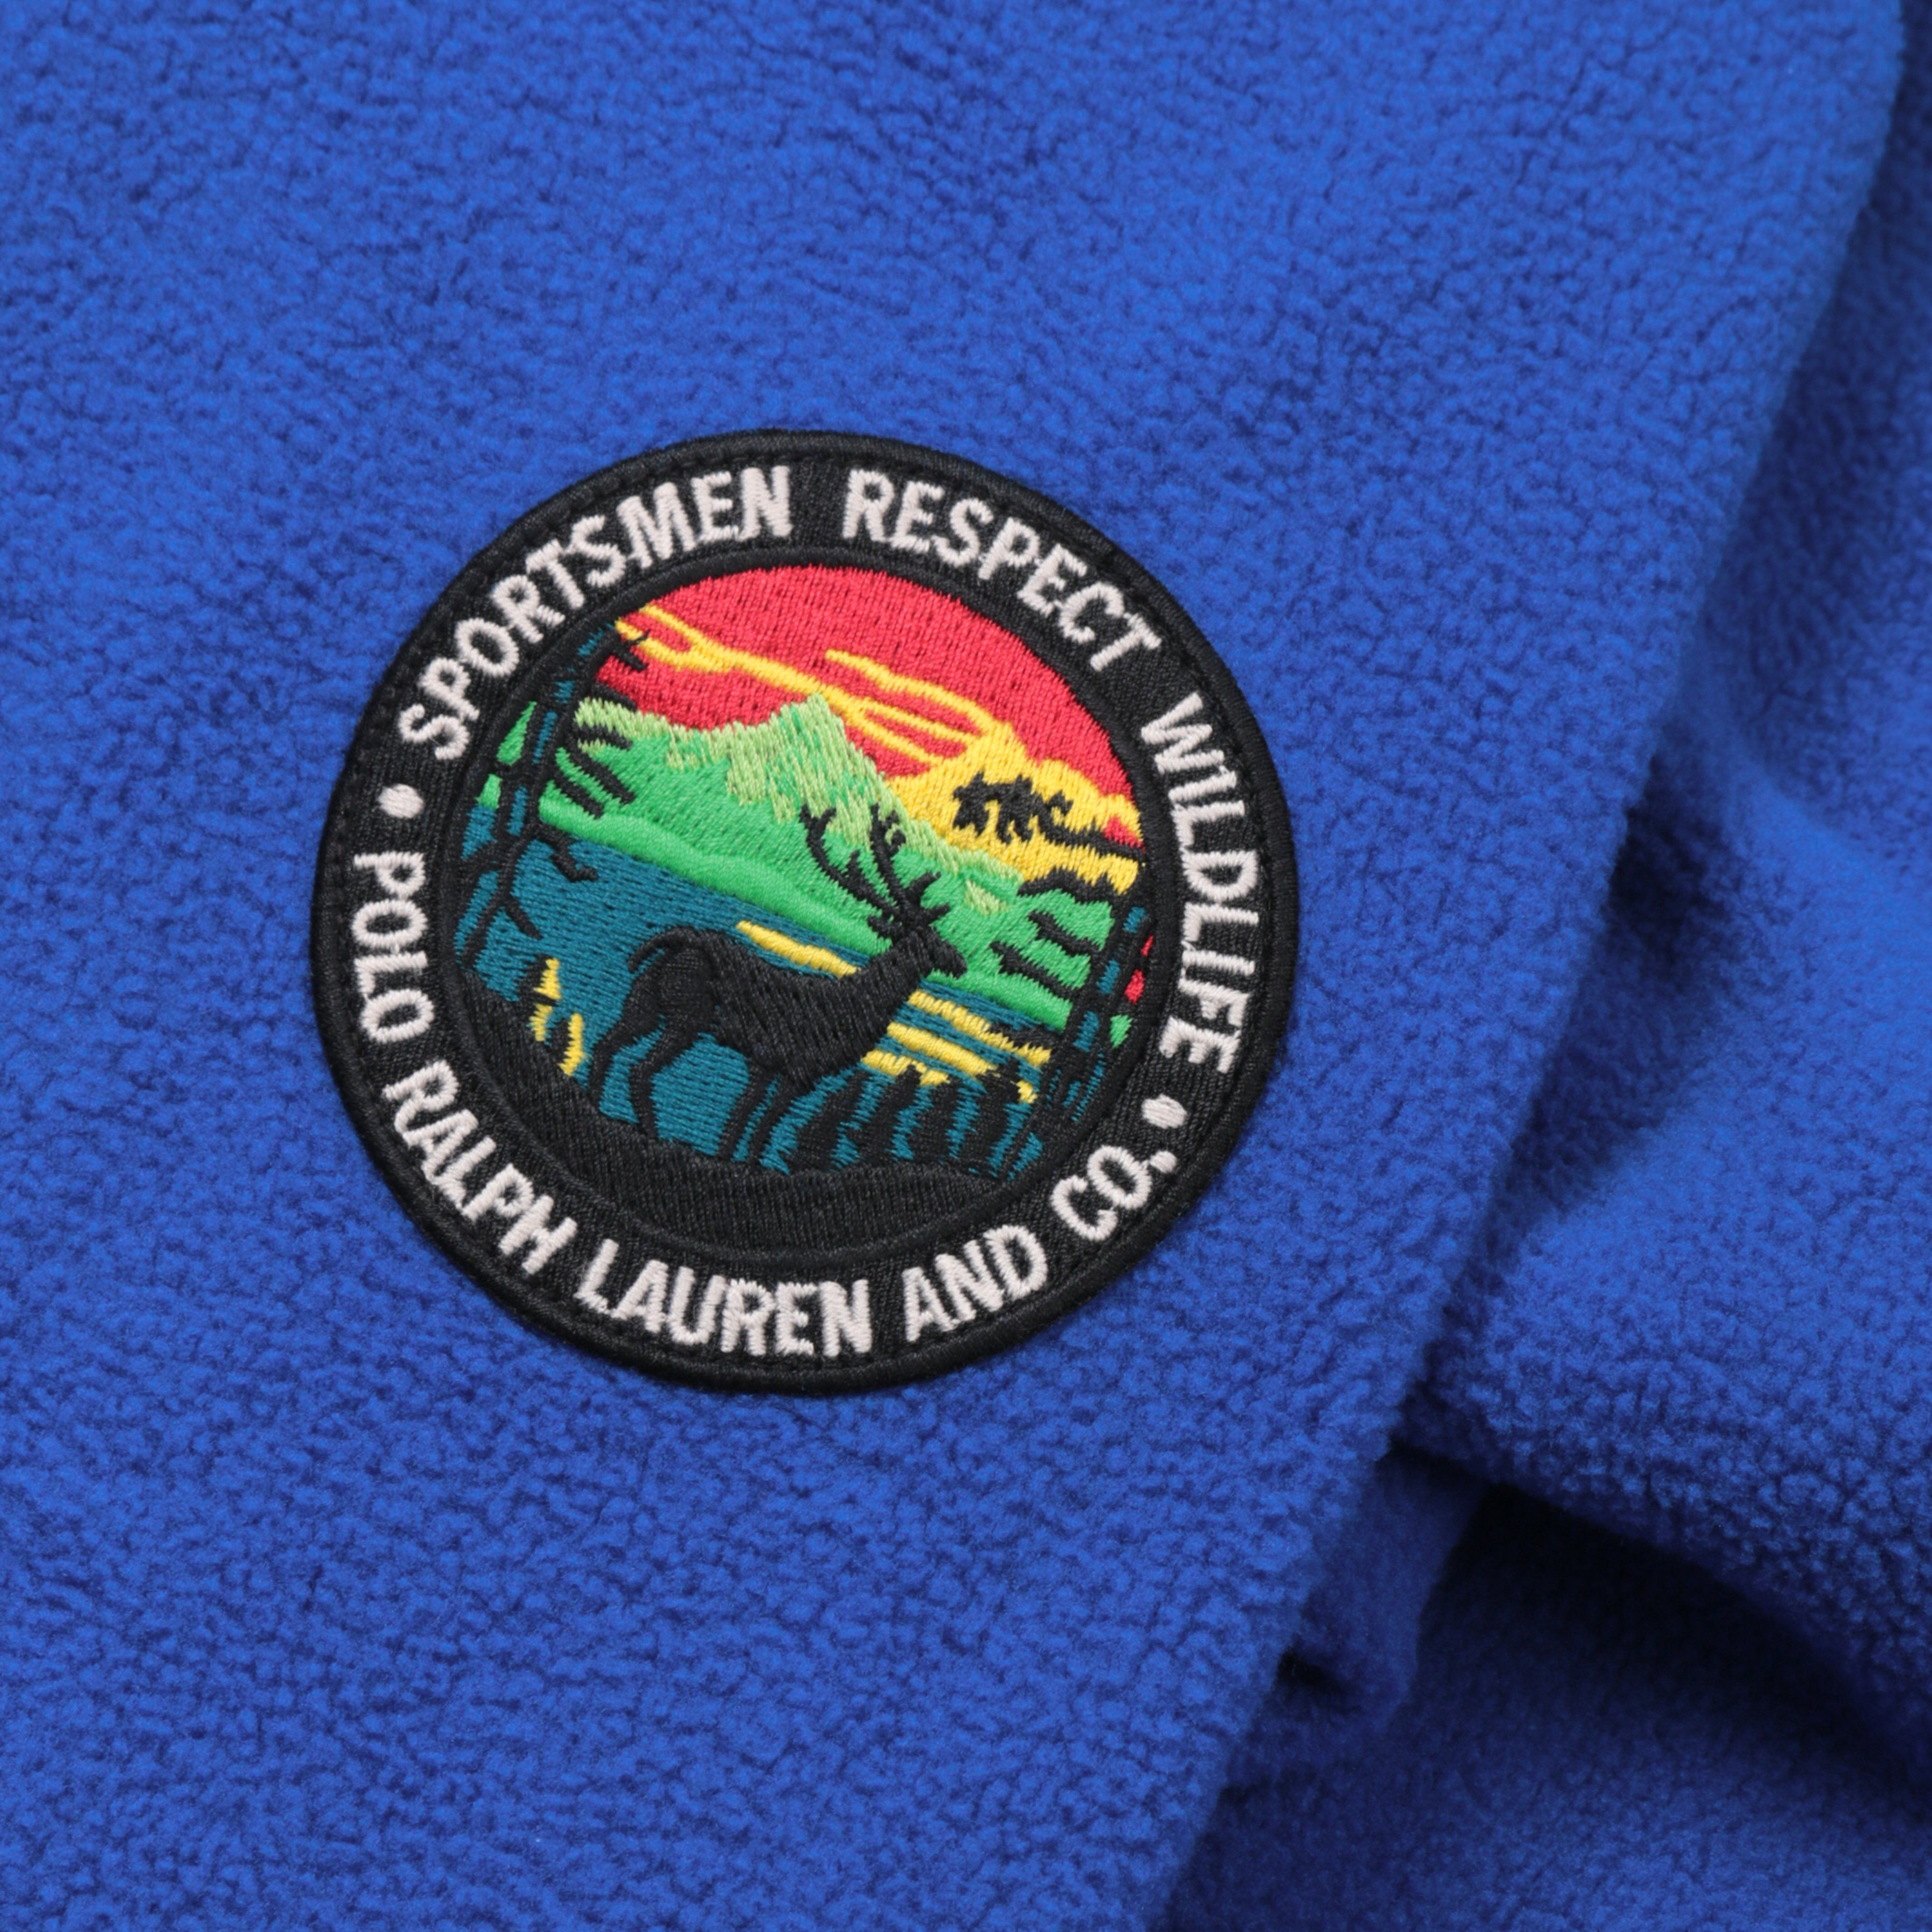 Polo Ralph Lauren Vintage Polar Fleece